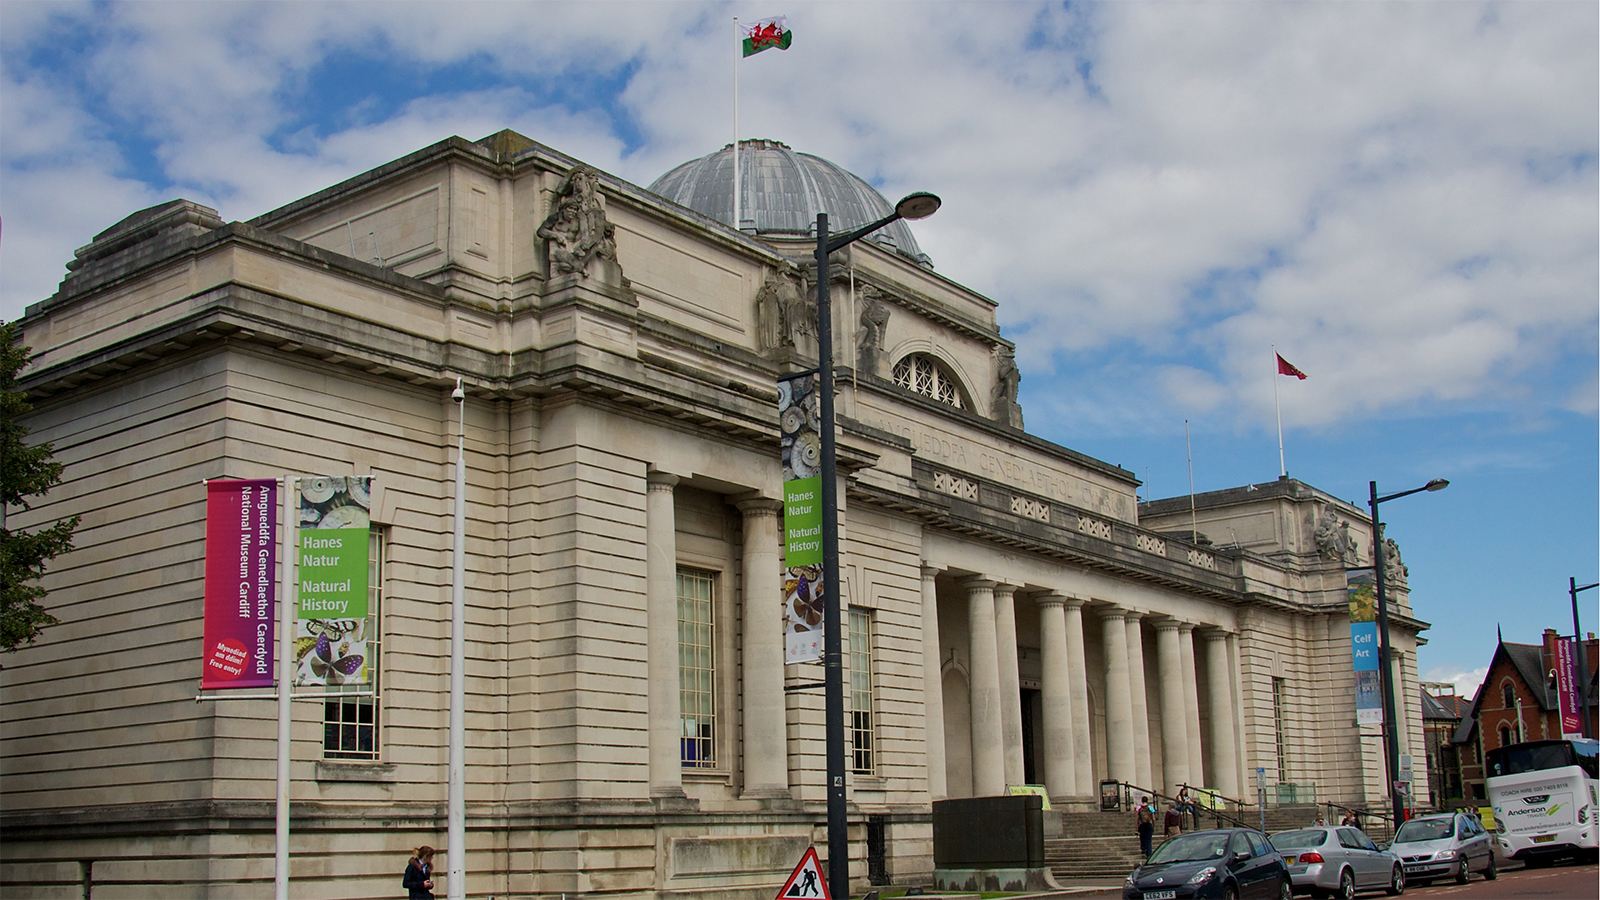 The National Museum Cardiff has transformed into a film set while it remains shut to the public